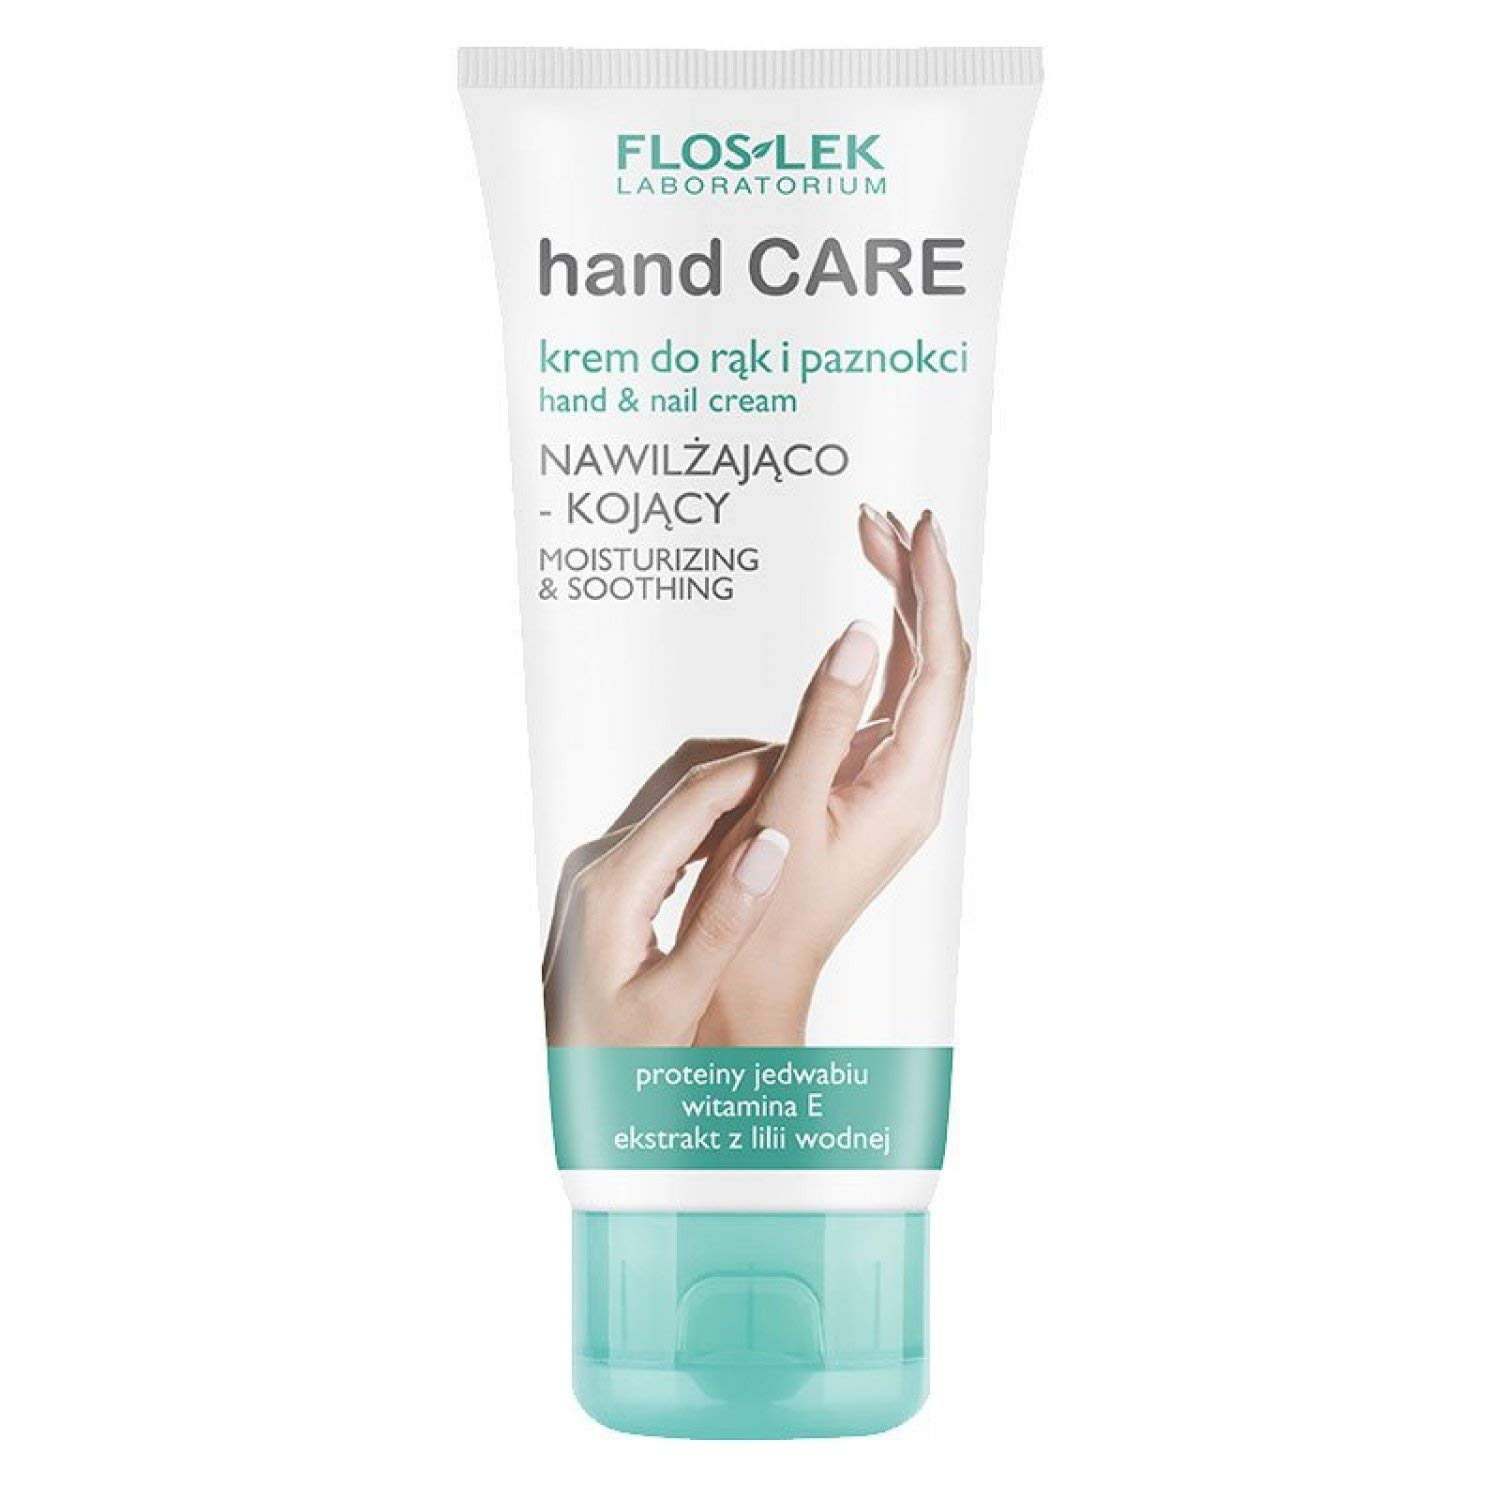 FLOS-LEK Hand Care Moisturizing And Soothing Hand And Nail Cream - 100ml